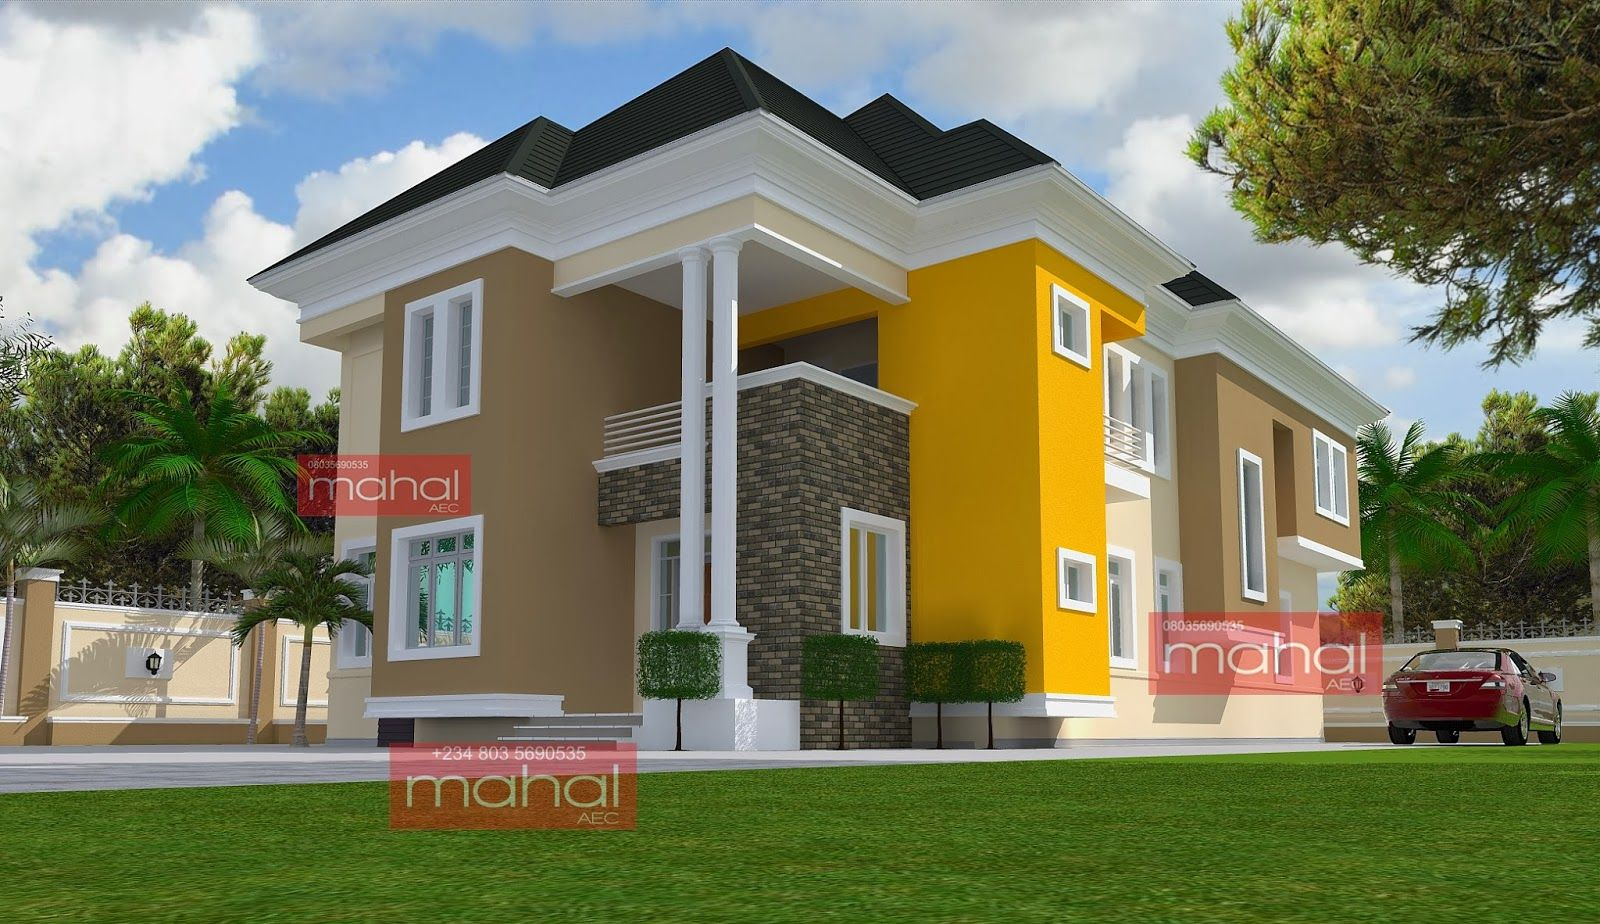 Contemporary Nigerian Residential Architecture: 4 Bedroom